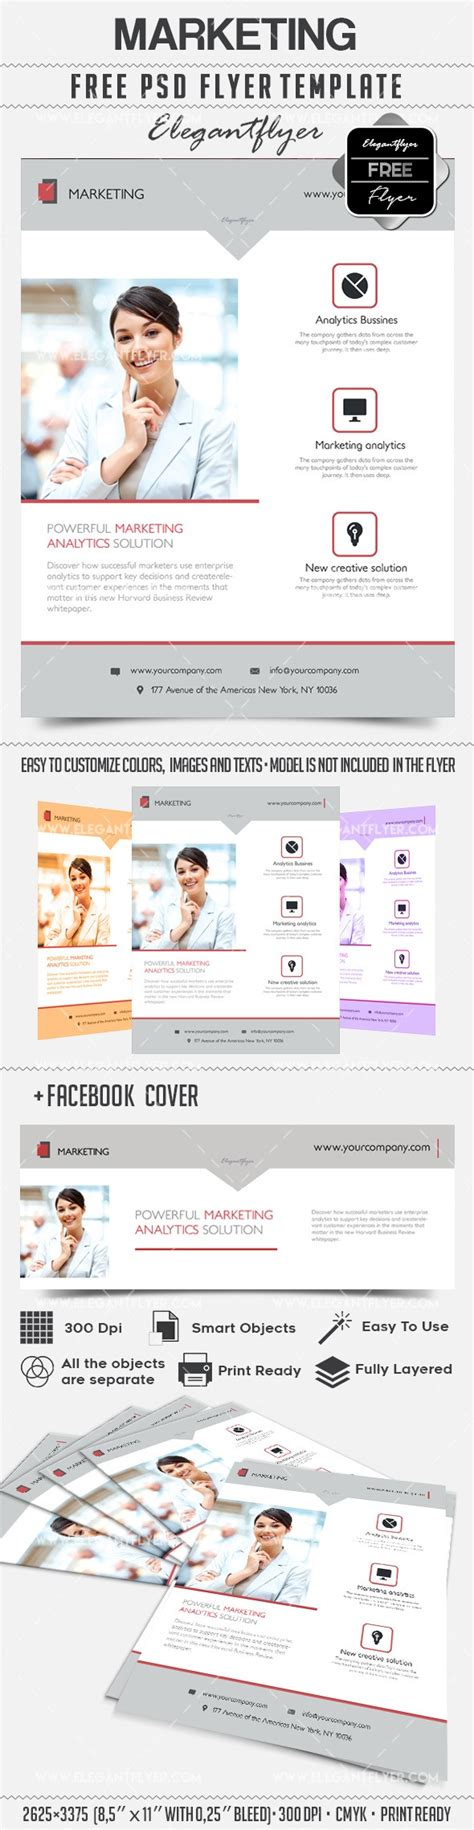 Marketing Flyer Psd Template By Elegantflyer Marketing Flyer Template